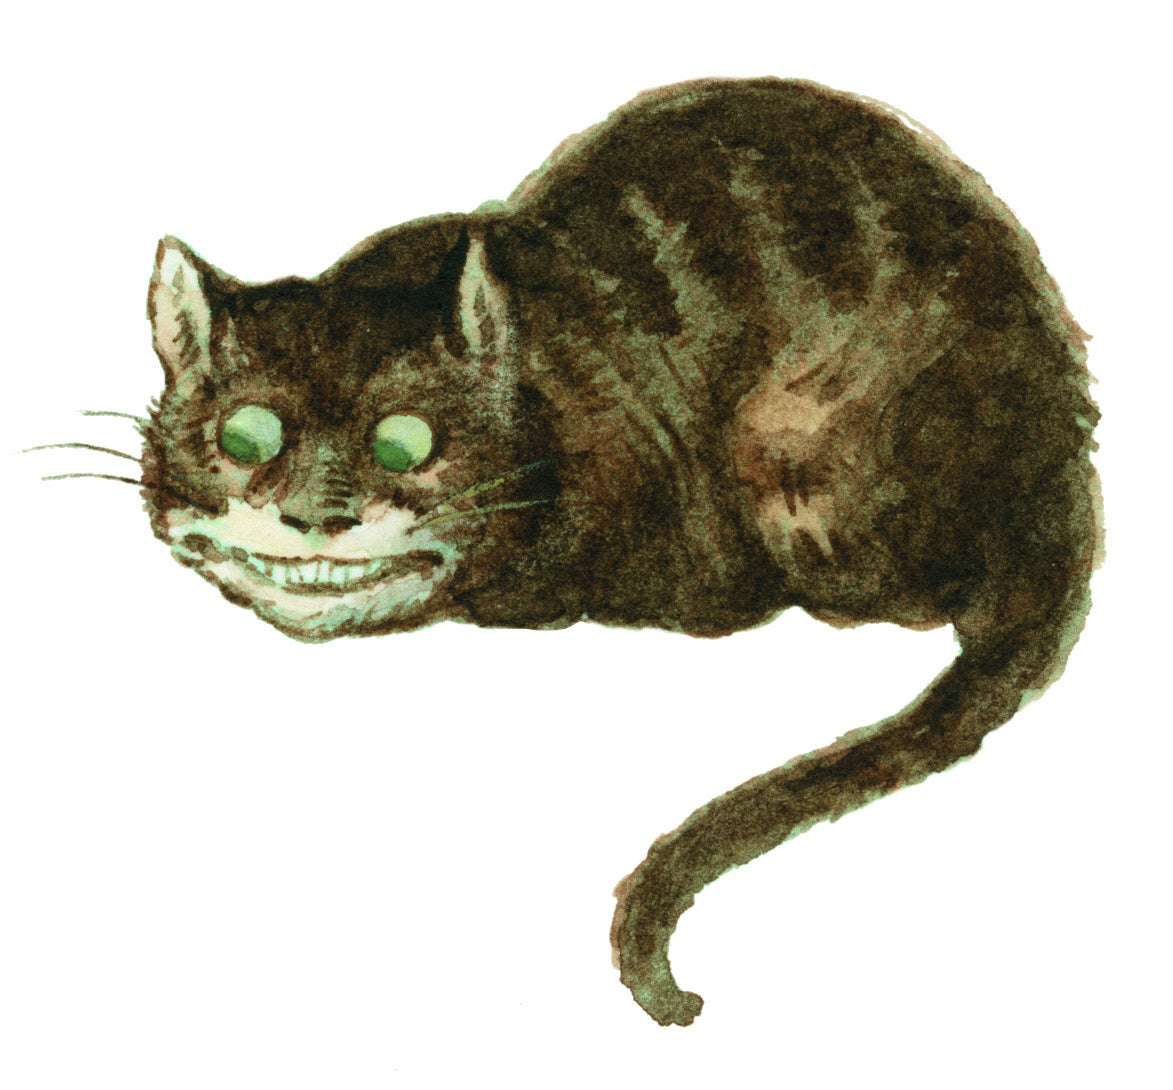 Illustration of the grinning Cheshire Cat from Alice in Wonderland.